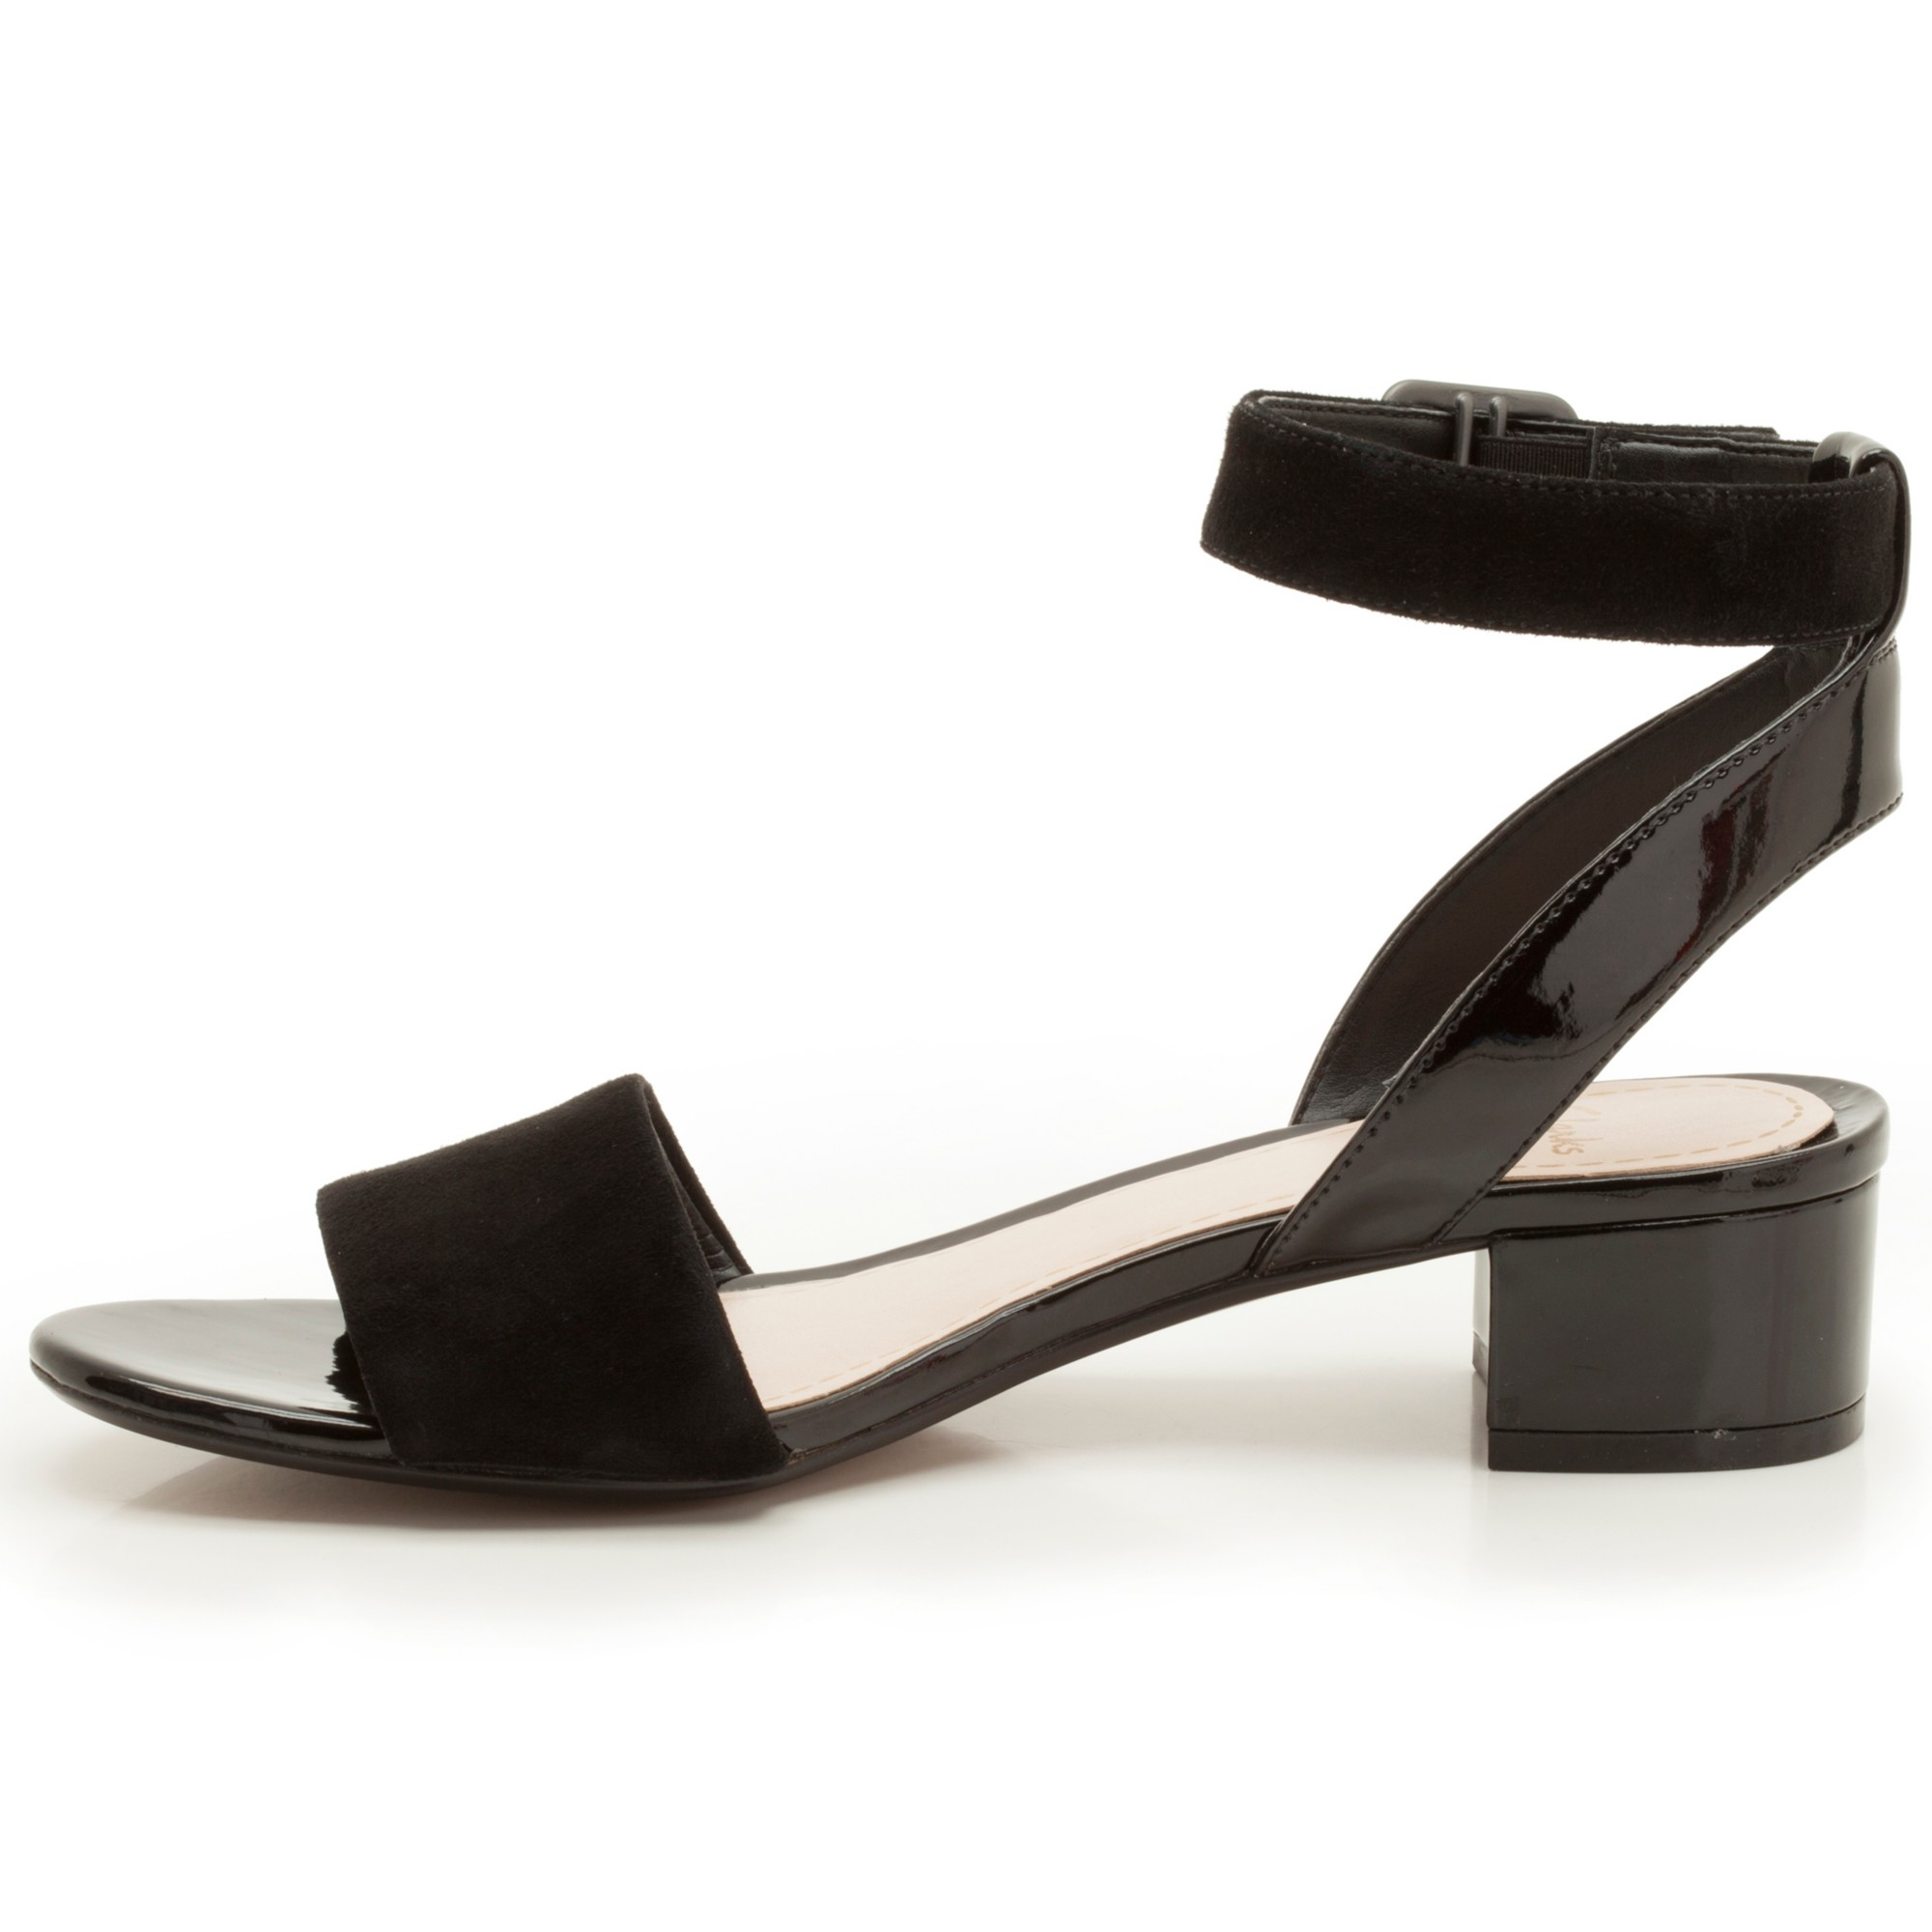 a666c40dbad204 Clarks Sharna Balcony Suede Sandals in Black - Lyst